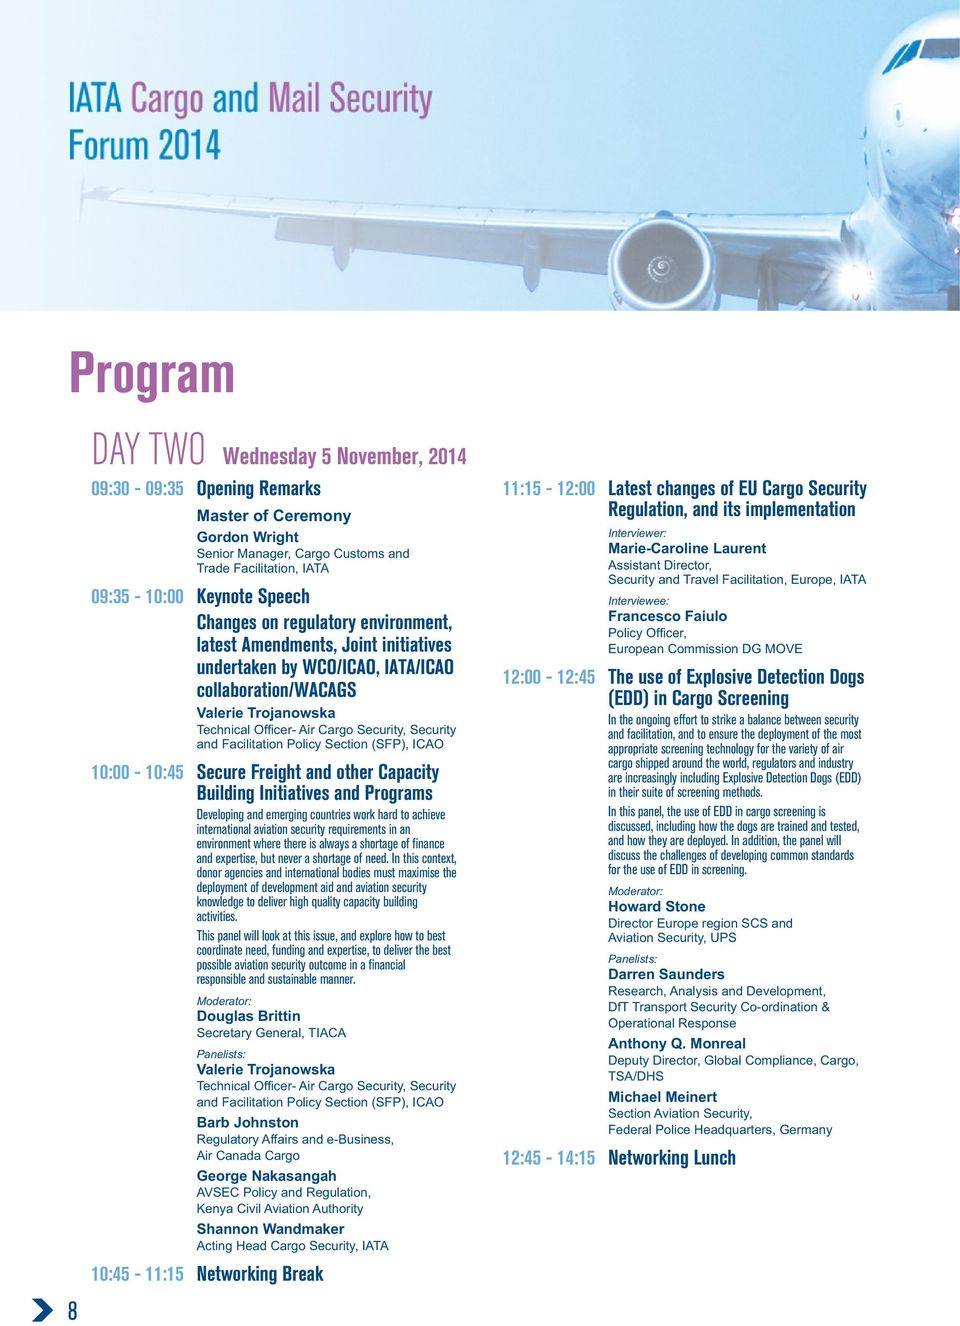 Facilitation Policy Section (SFP), ICAO 10:00-10:45 Secure Freight and other Capacity Building Initiatives and Programs Developing and emerging countries work hard to achieve international aviation